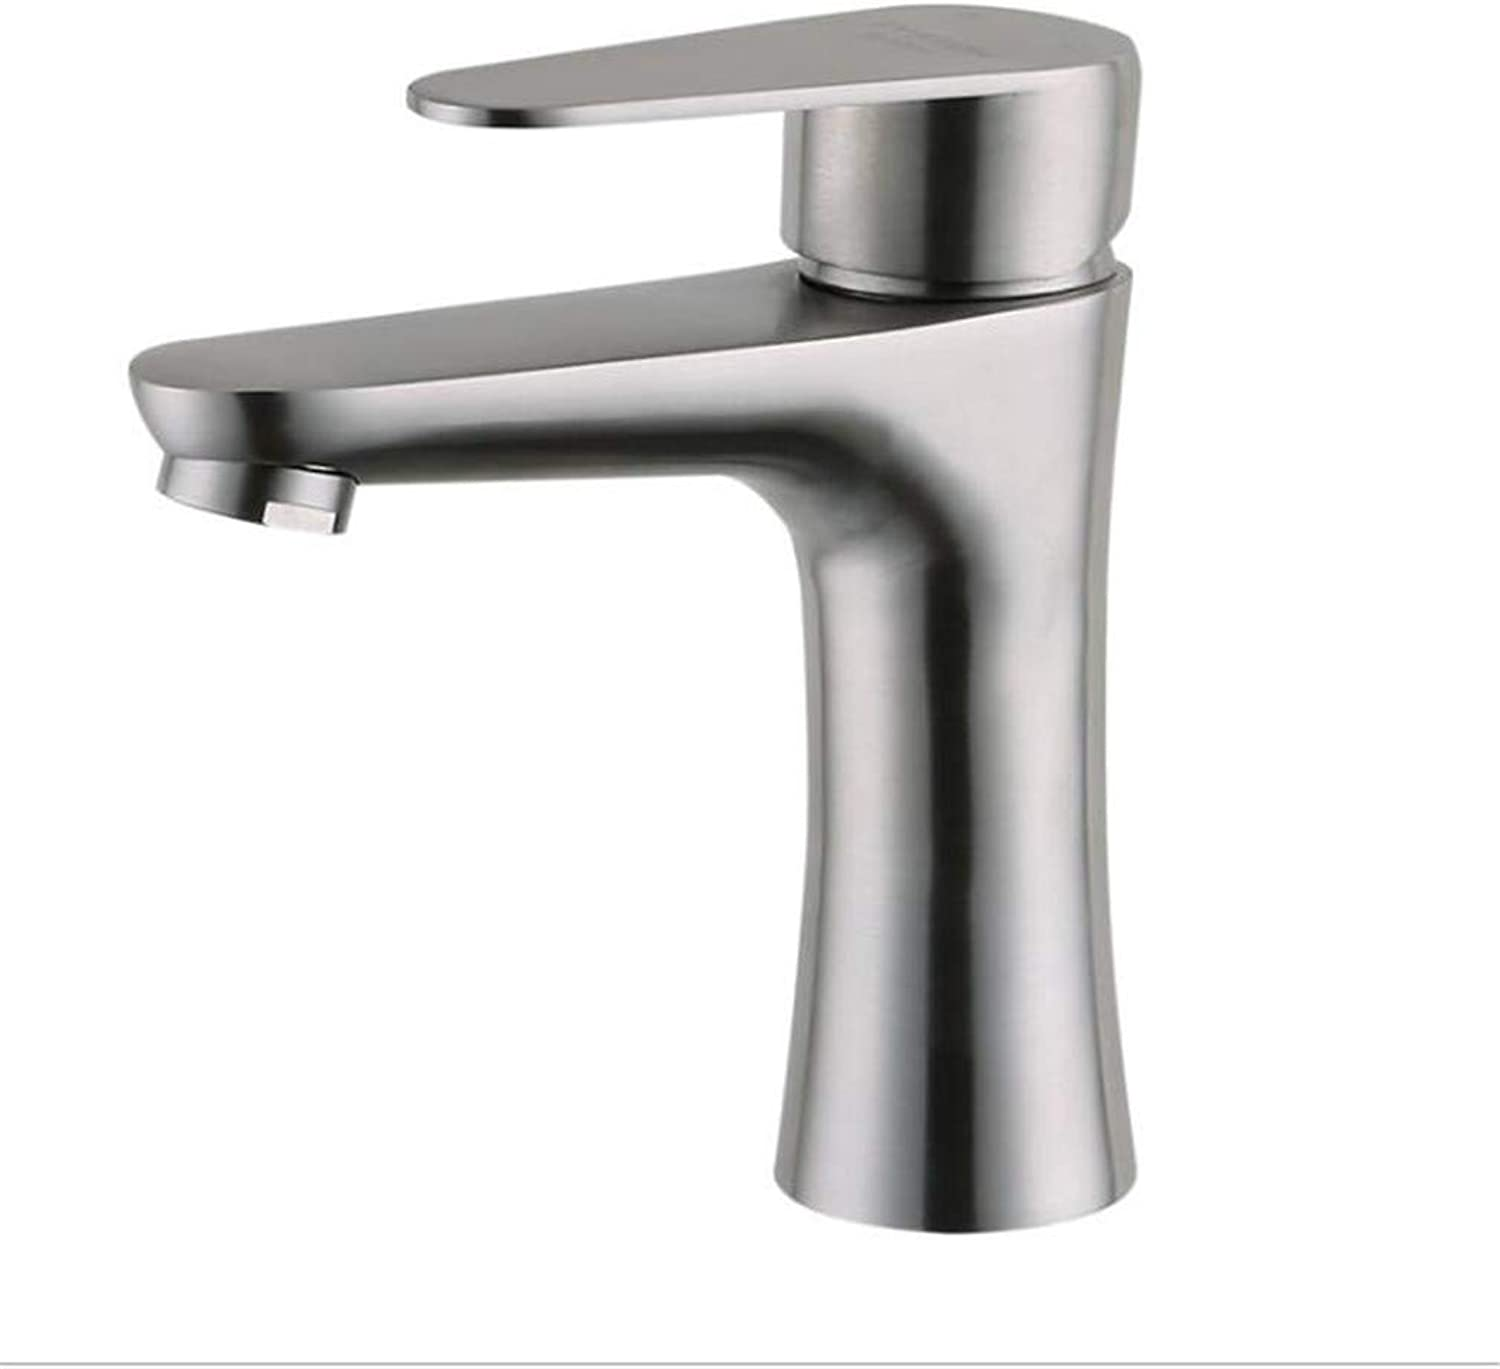 Bathroom Sink Basin Lever Mixer Tap 304 Stainless Steel Thickened Drawing Pot Lead Bathroom Low-Style Washbasin Platform